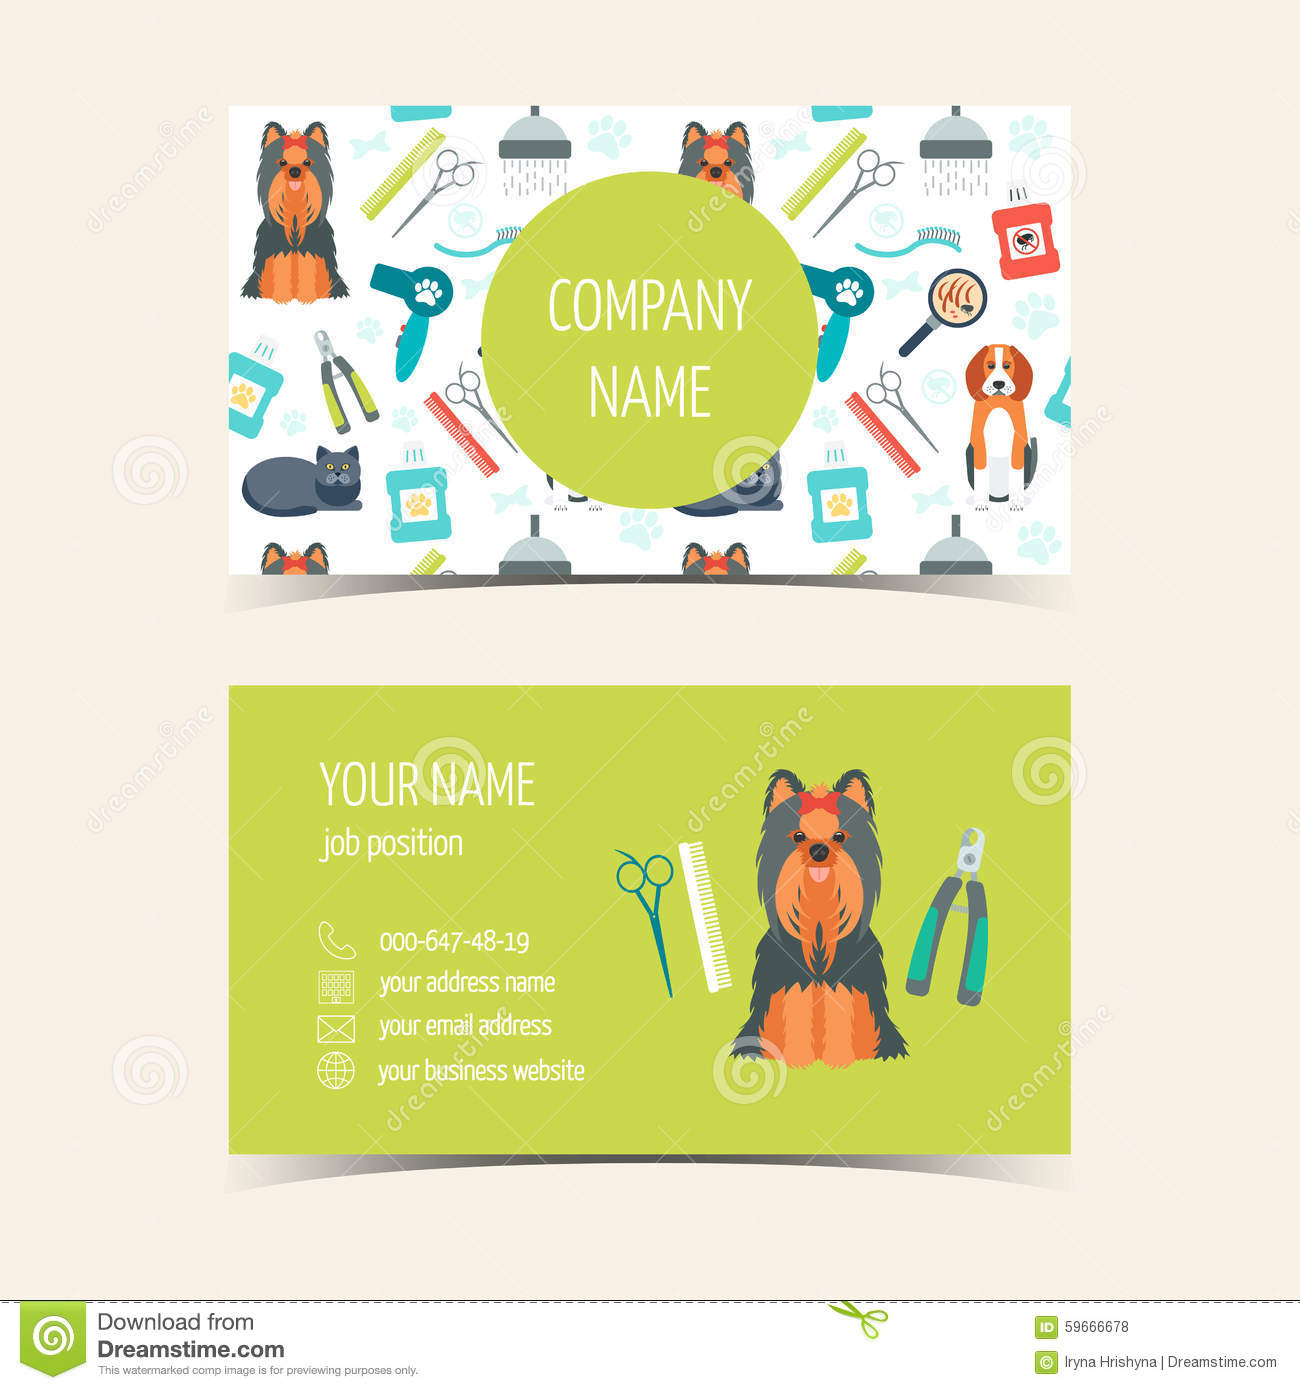 Cartes De Visite Professionnelle Pour Le Toilettage Animal Produits Promotionnels Conception Plate Illustration Vecteur